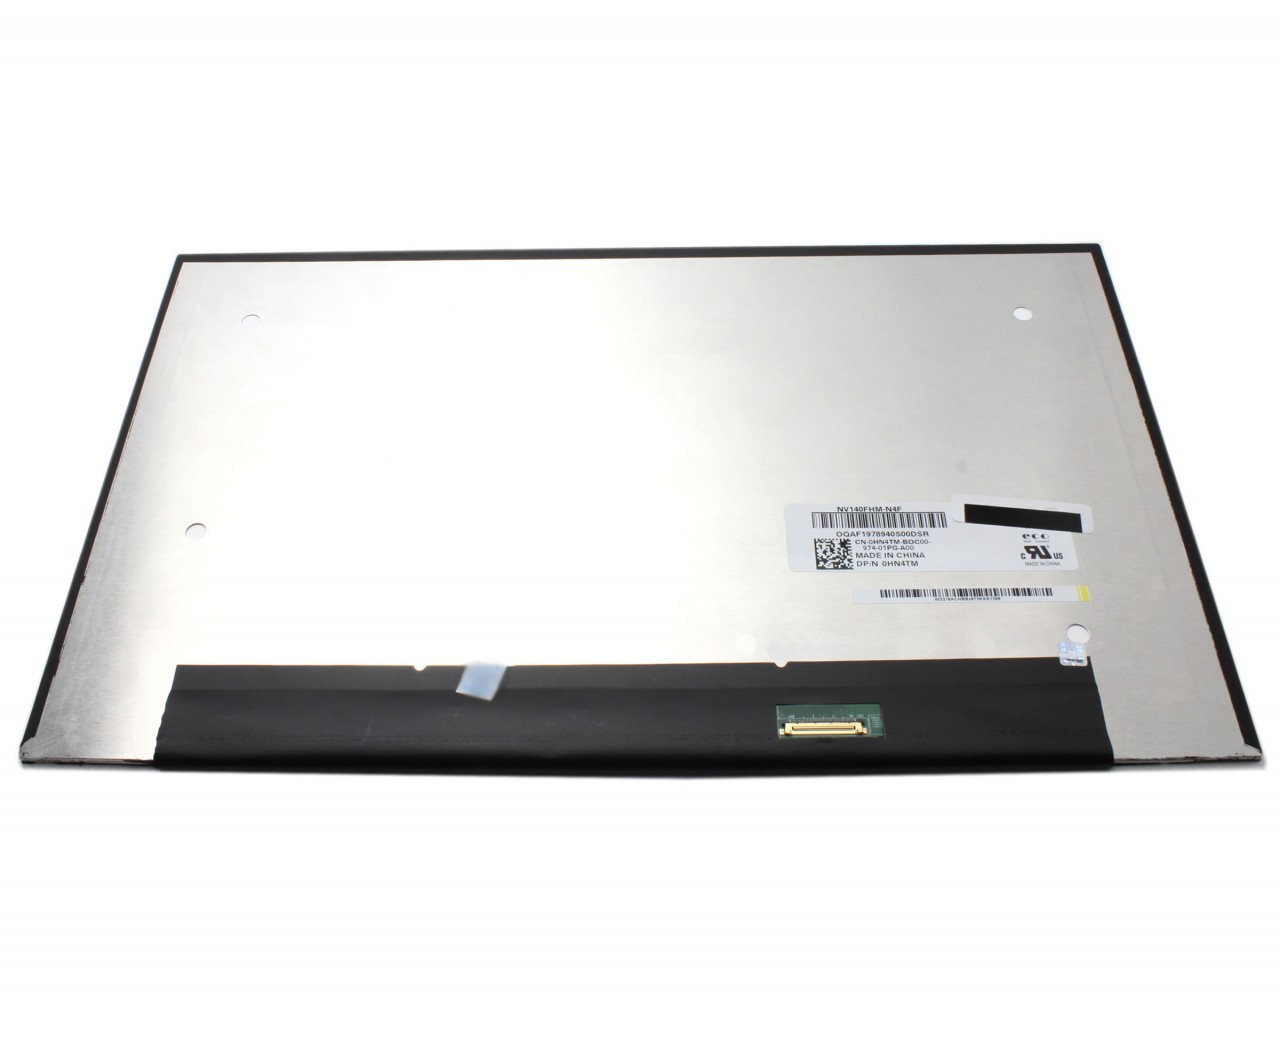 Display laptop Dell Latitude 5411 Ecran 14.0 1920x1080 30 pinni eDP imagine powerlaptop.ro 2021